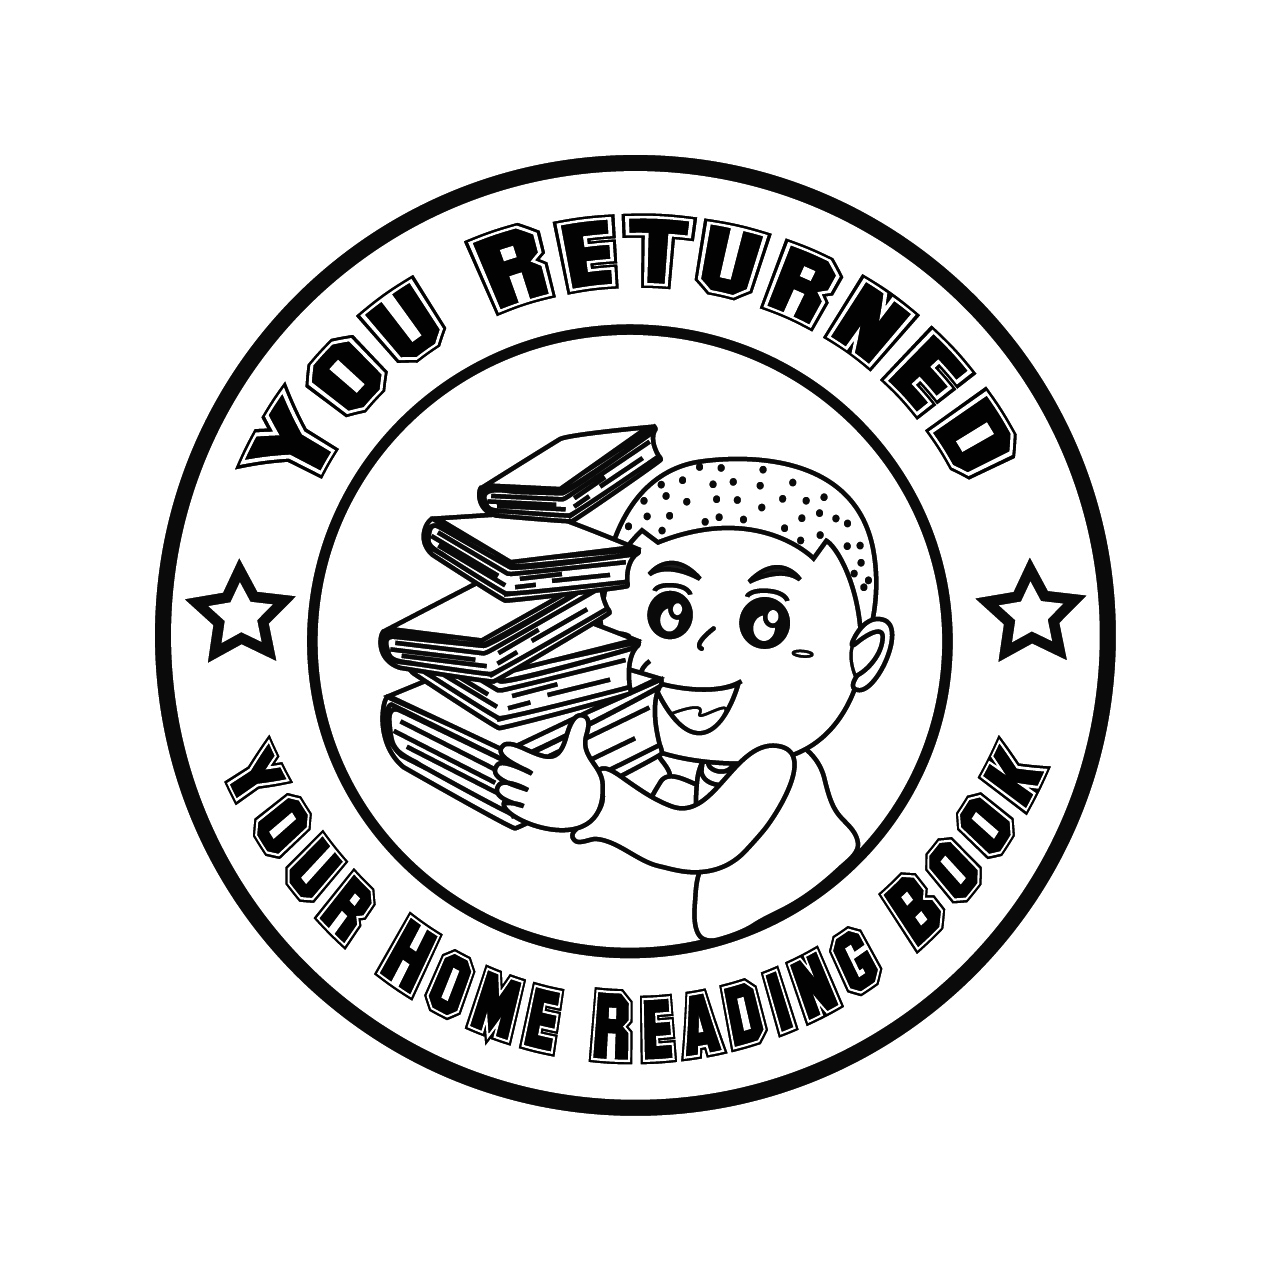 Home reading stamps and certificate